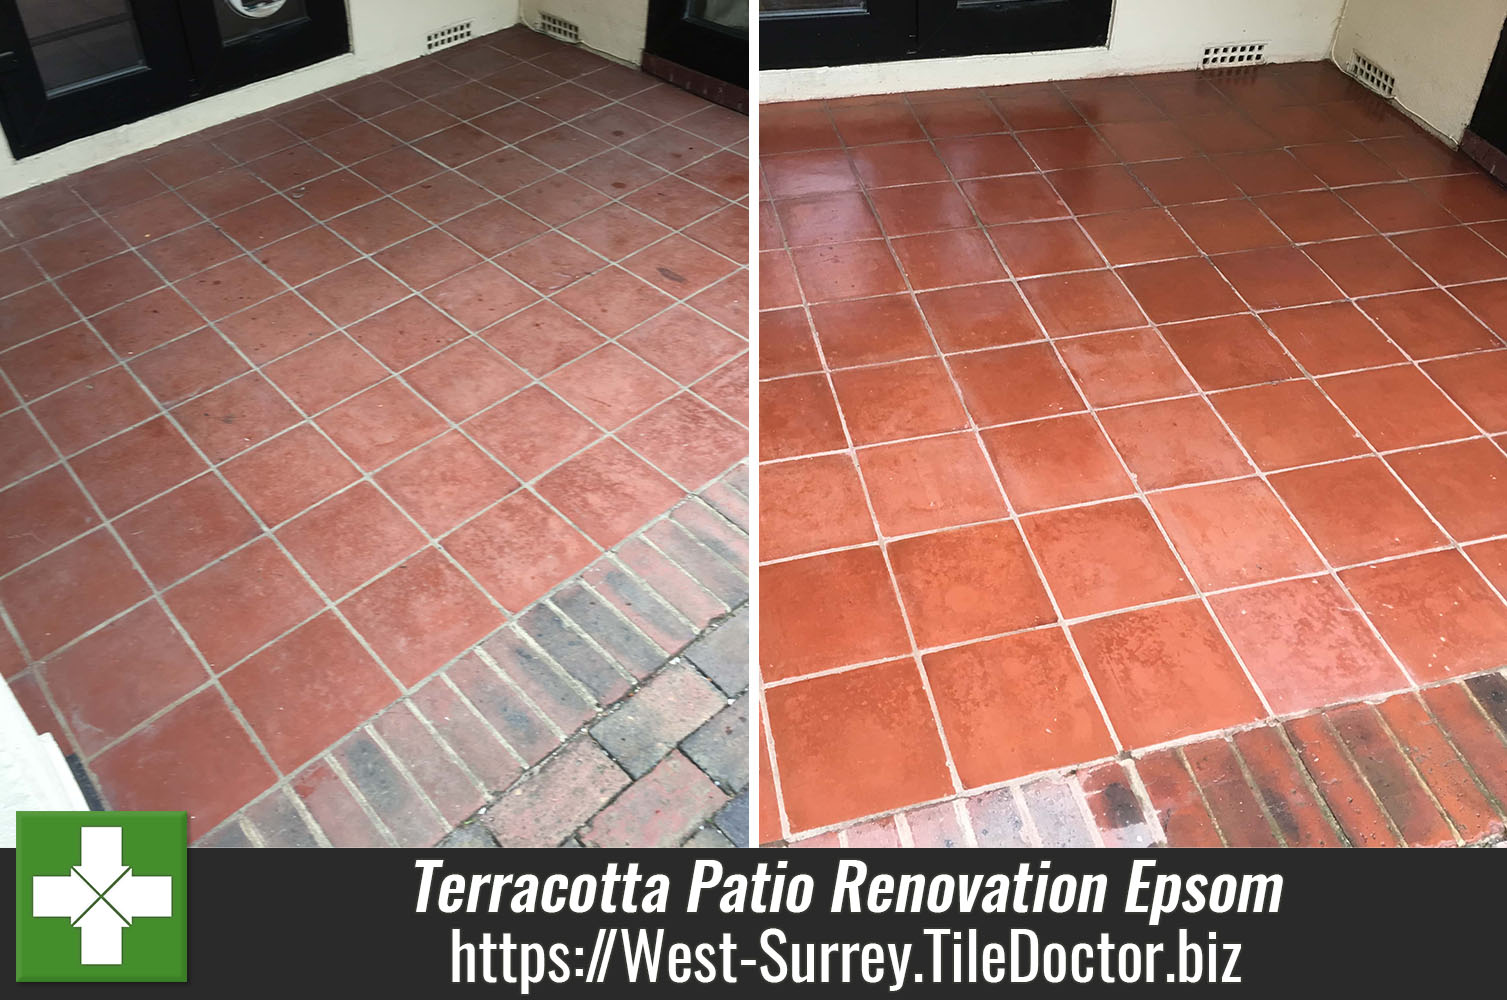 Cleaning and Sealing a Terracotta Tiled Patio Area in Epsom